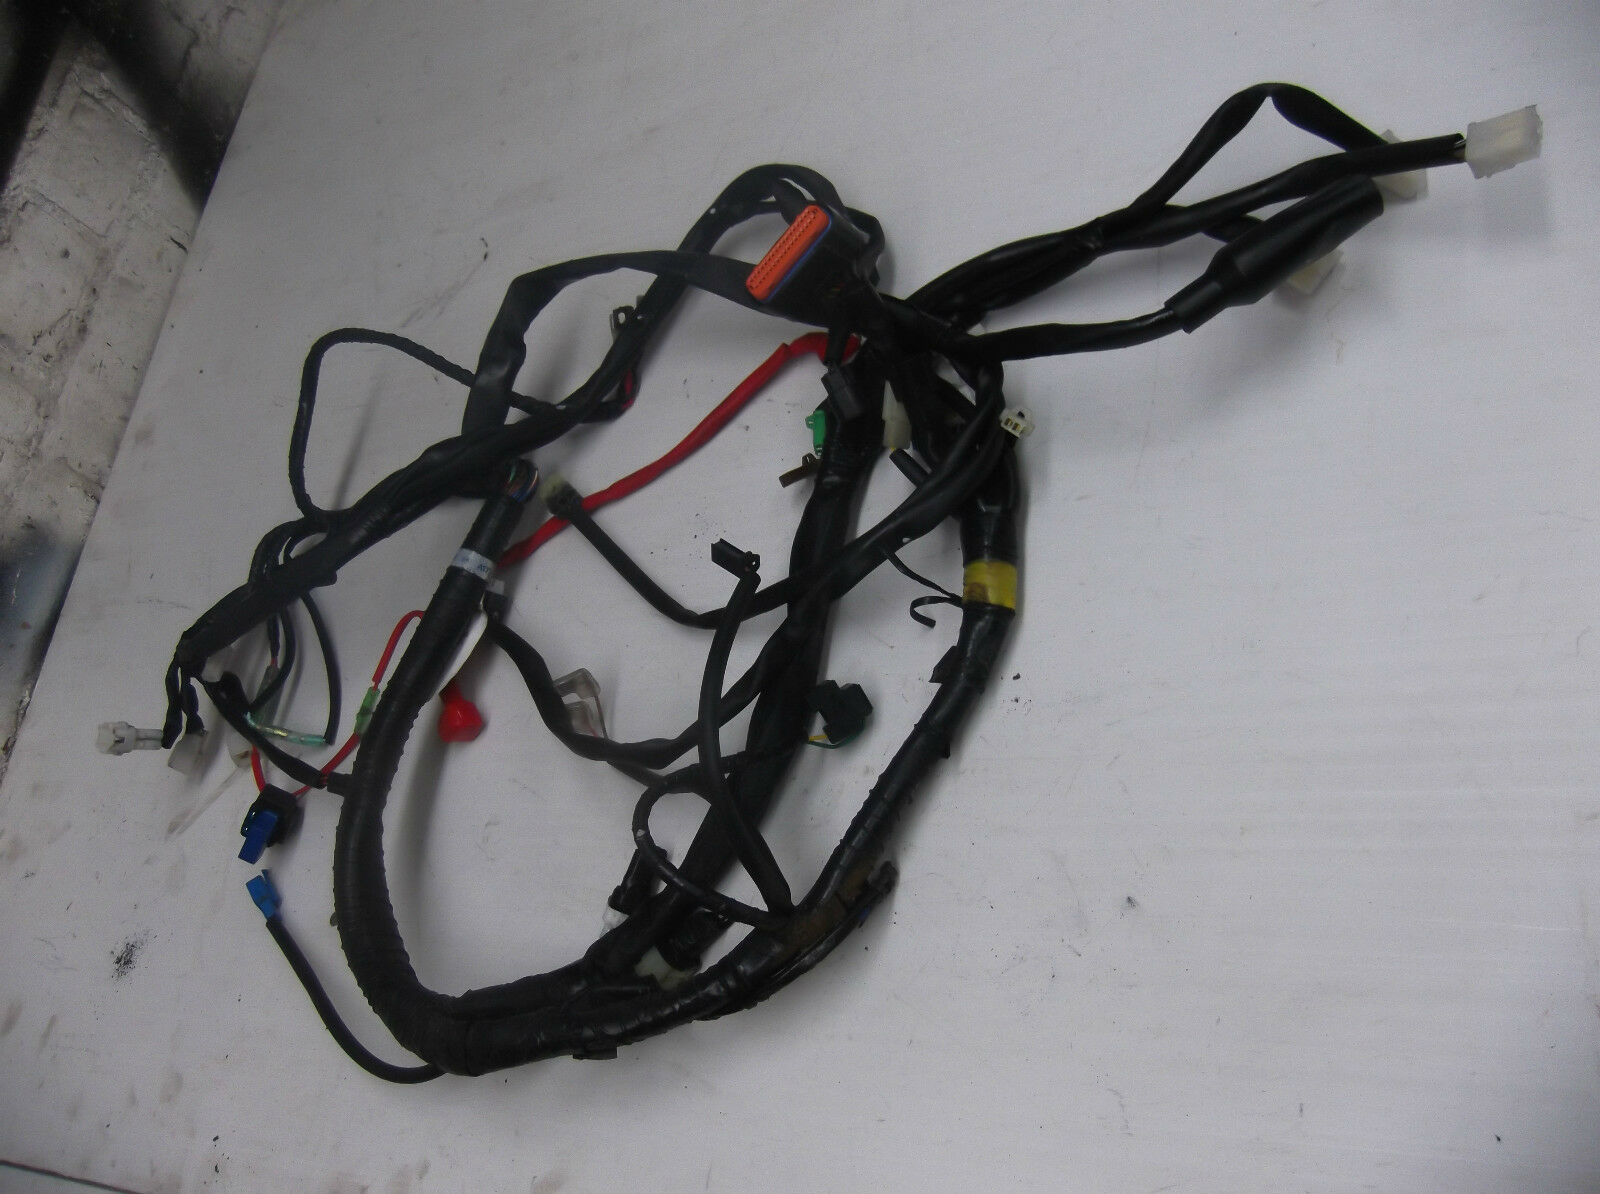 Yamaha Vity 125 Wiring Harness 1700 Picclick Uk 1 Of 1only Available